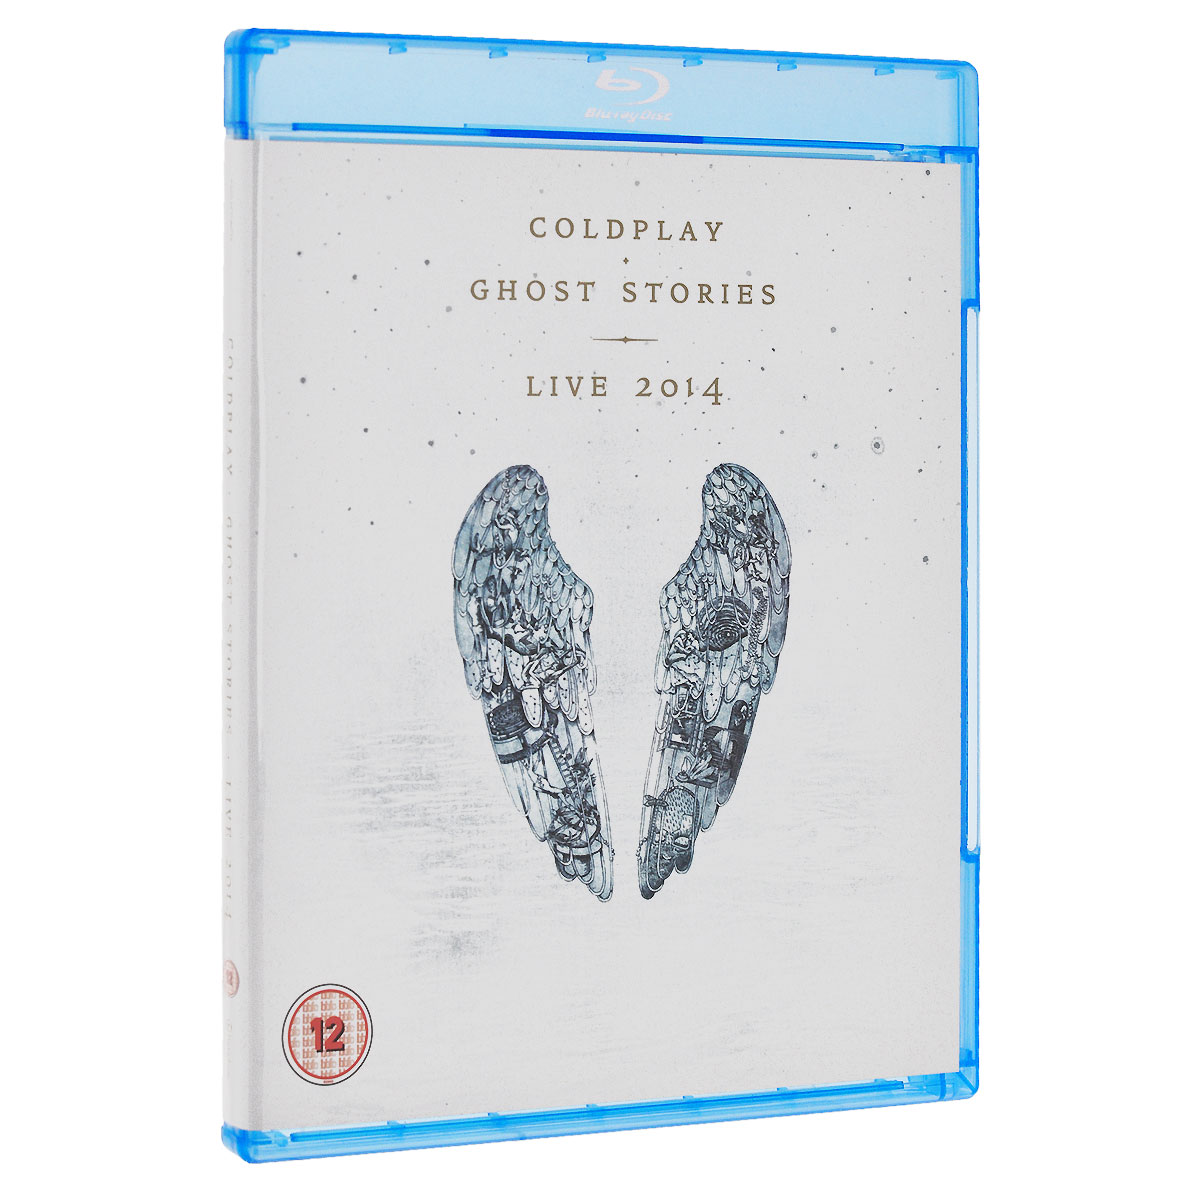 Coldplay. Ghost Stories. Live 2014 (Blu-ray + CD) аксессуар чехол для xiaomi redmi 5 innovation transparent 13141